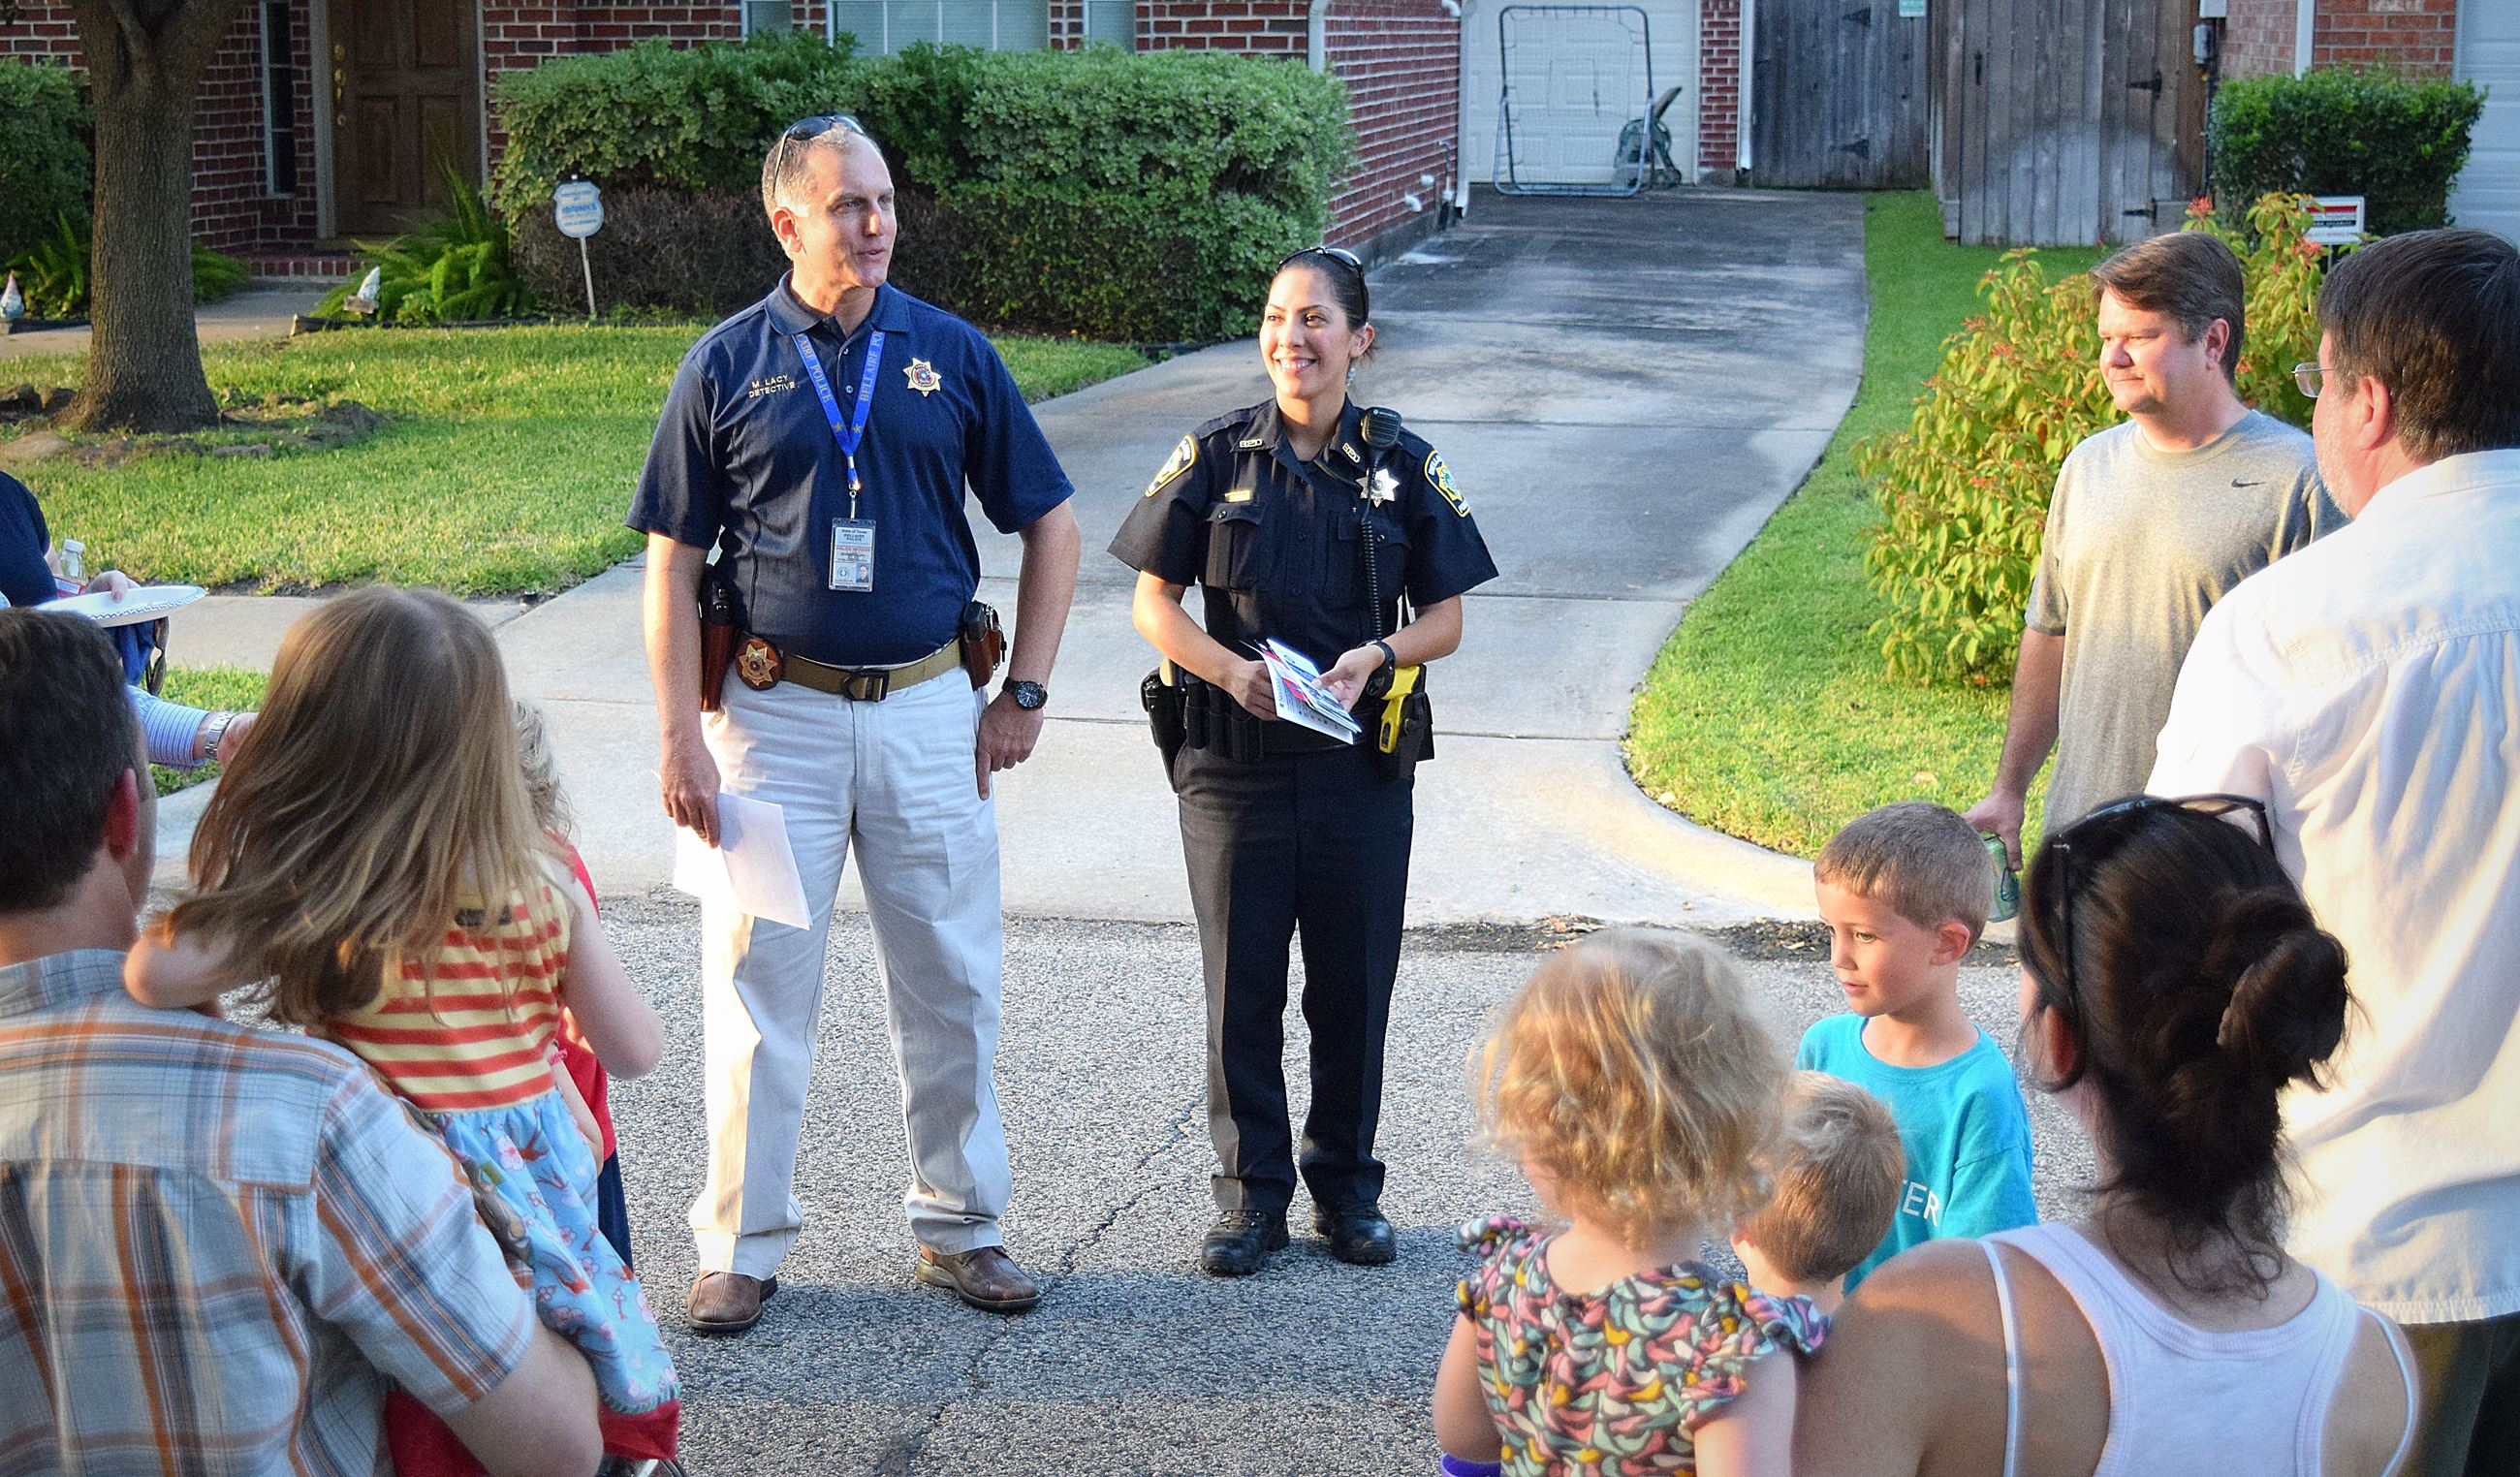 Police Department members speak to group at outdoor event